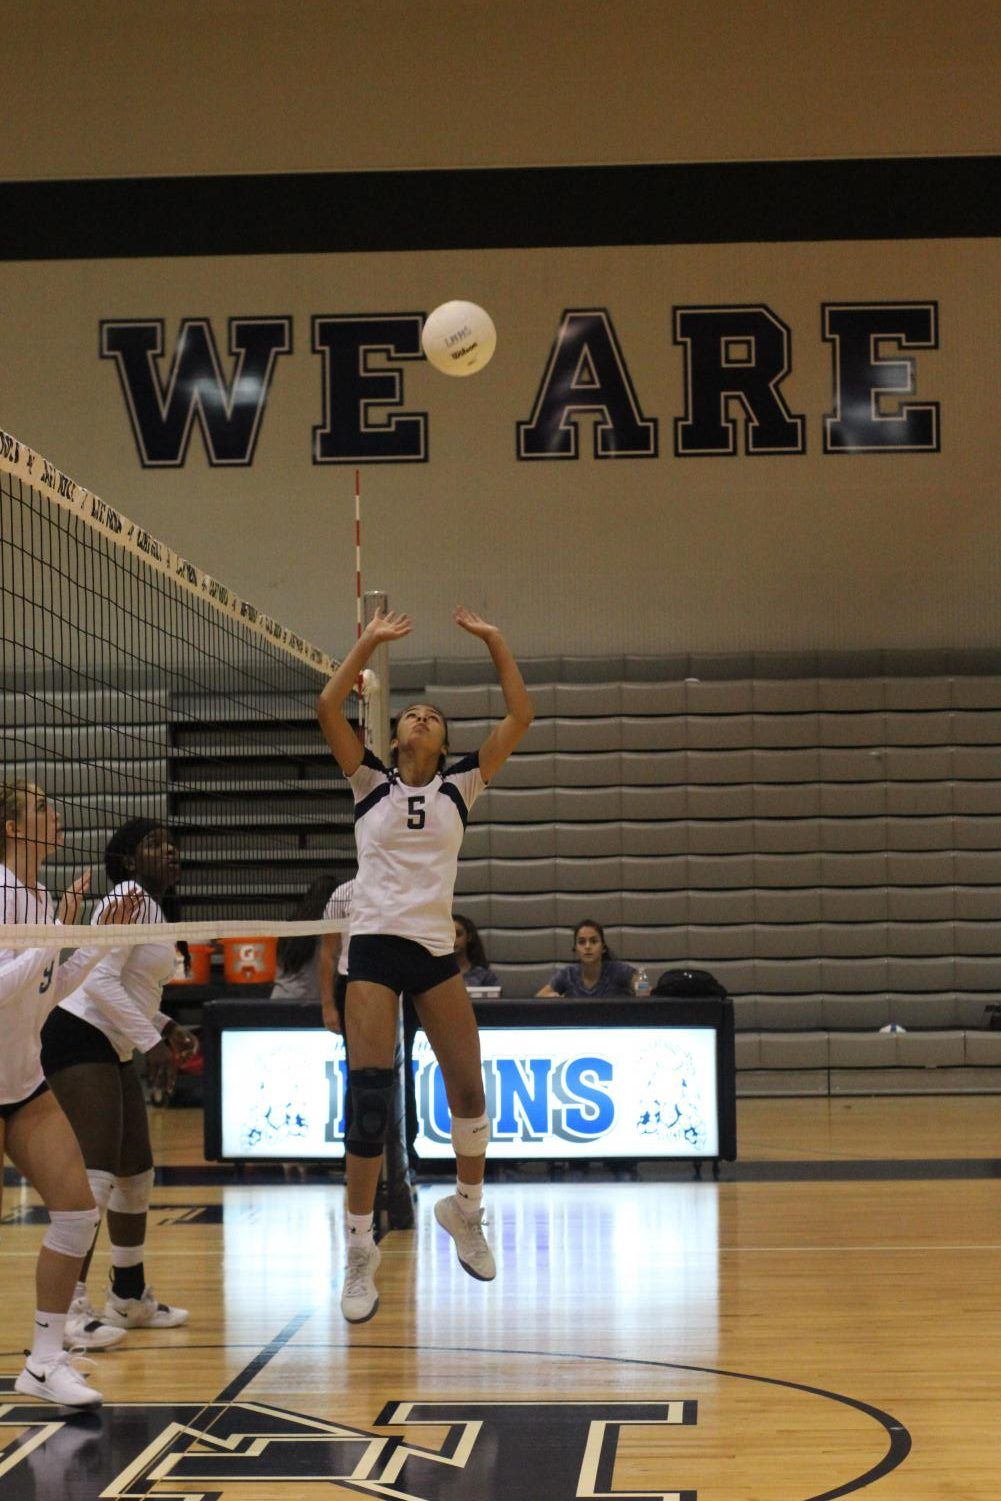 Racquel Misra (11) sets the ball for her teammate Zoe Glover (11) to spike and gain another point for the Lions.